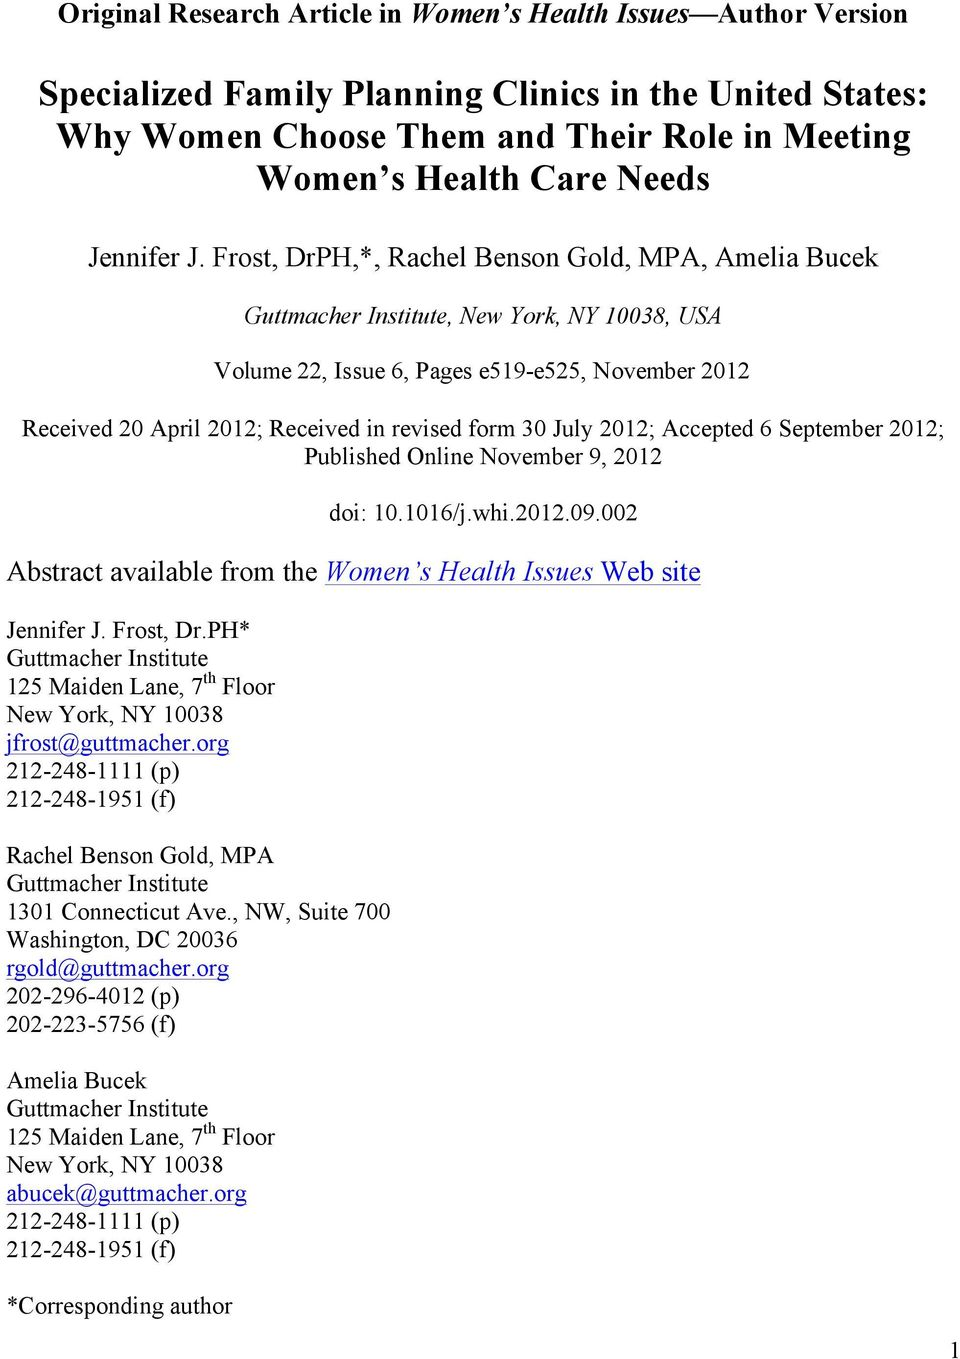 Frost, DrPH,*, Rachel Benson Gold, MPA, Amelia Bucek Guttmacher Institute, New York, NY 10038, USA Received 20 April 2012; Received in revised form 30 July 2012; Accepted 6 September 2012; Published